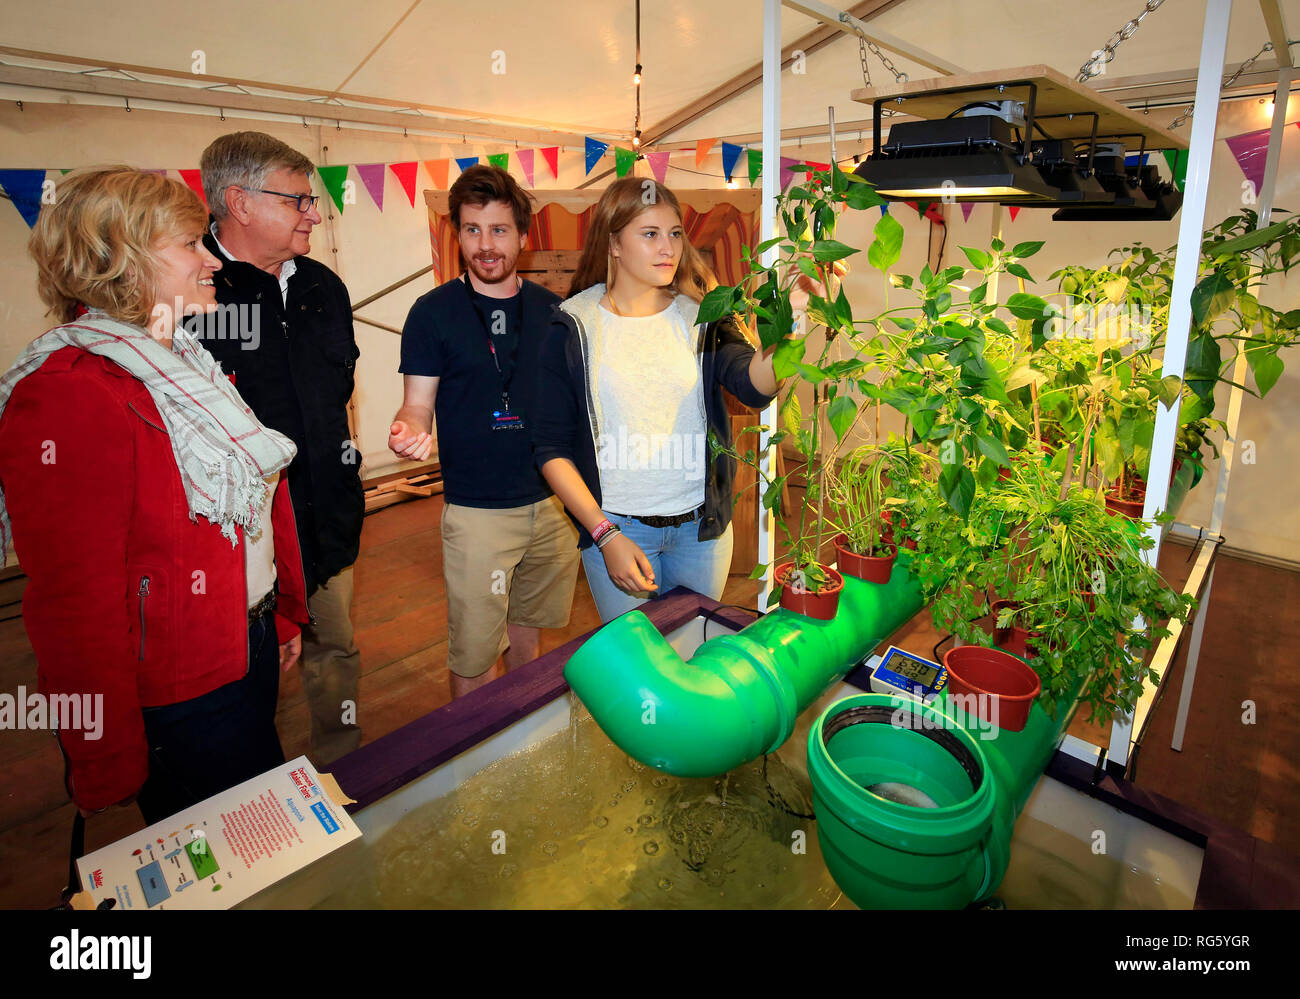 Aquaponic-Urban Farming Project, Dortmunder U, WissensNacht Ruhr, a project for the climate metropolis Ruhr 2022, Aquaponik-Urban Farming Projekt, Dor Stock Photo